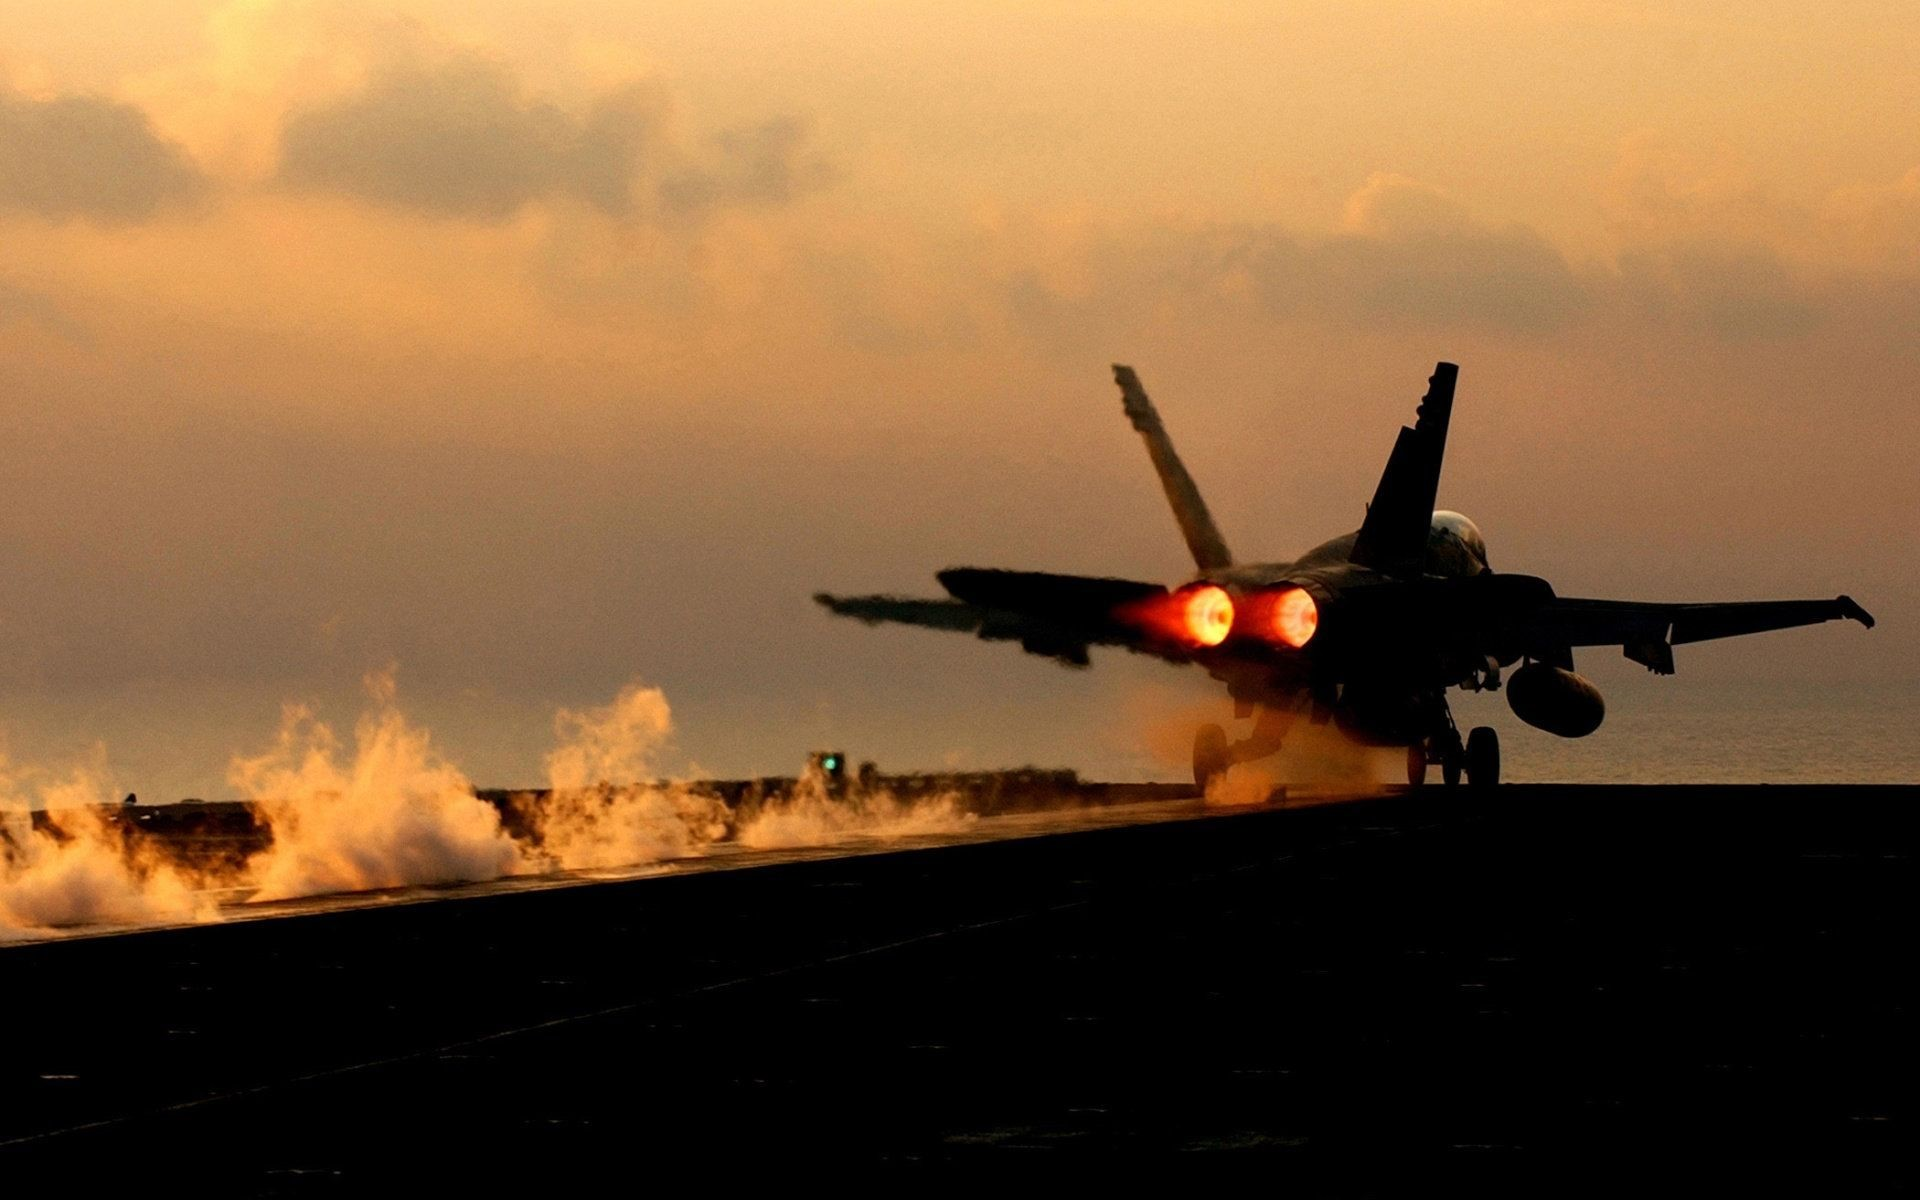 All free hd desktop wallpapers and backgrounds with Hornet Taking Off, an  all-weather carrier, Marine Corps, multirole fighter, United States Navy.  Image id